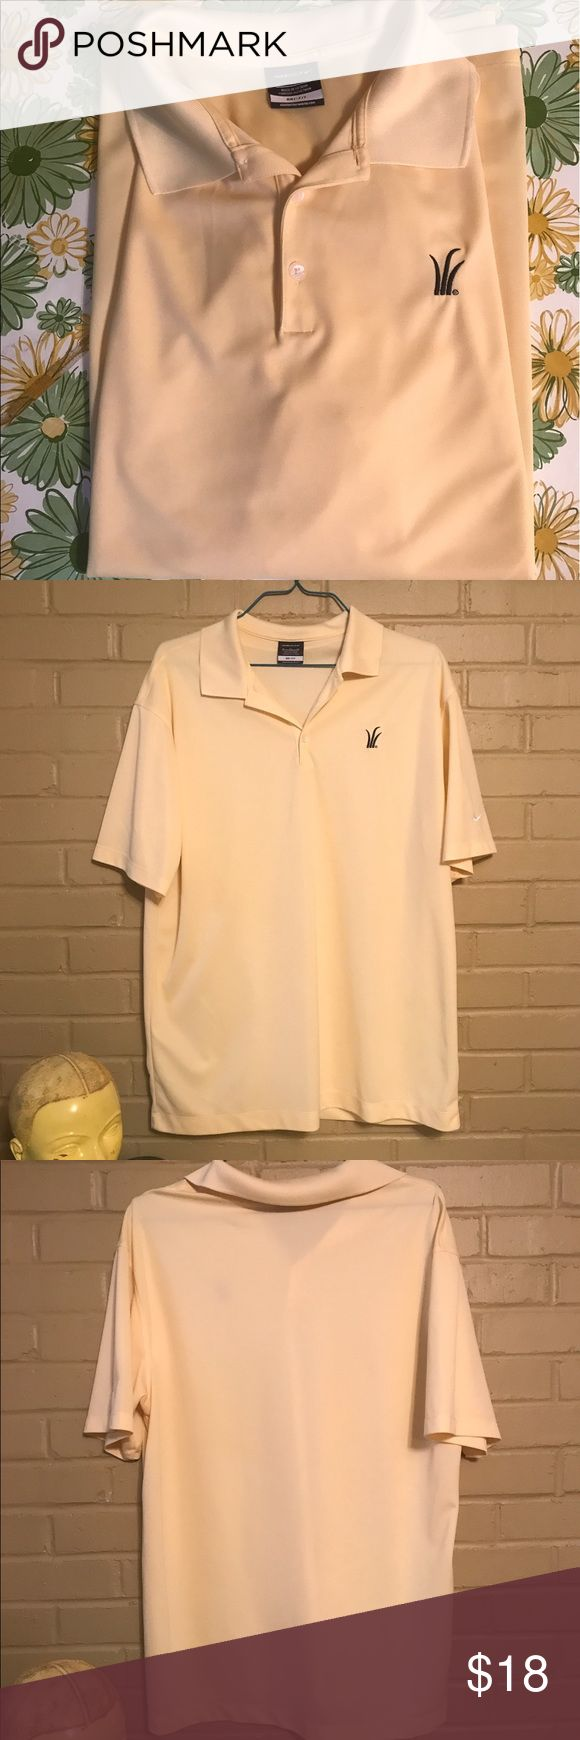 Nike Golf Dri-Fit Stretch Pale Yellow Polo Shirt Very nice, lightweight Nike Golf Dri-Fit Polo. This shirt is in excellent condition. The material is soft and stretchy for a nice fit. Nike Shirts Polos